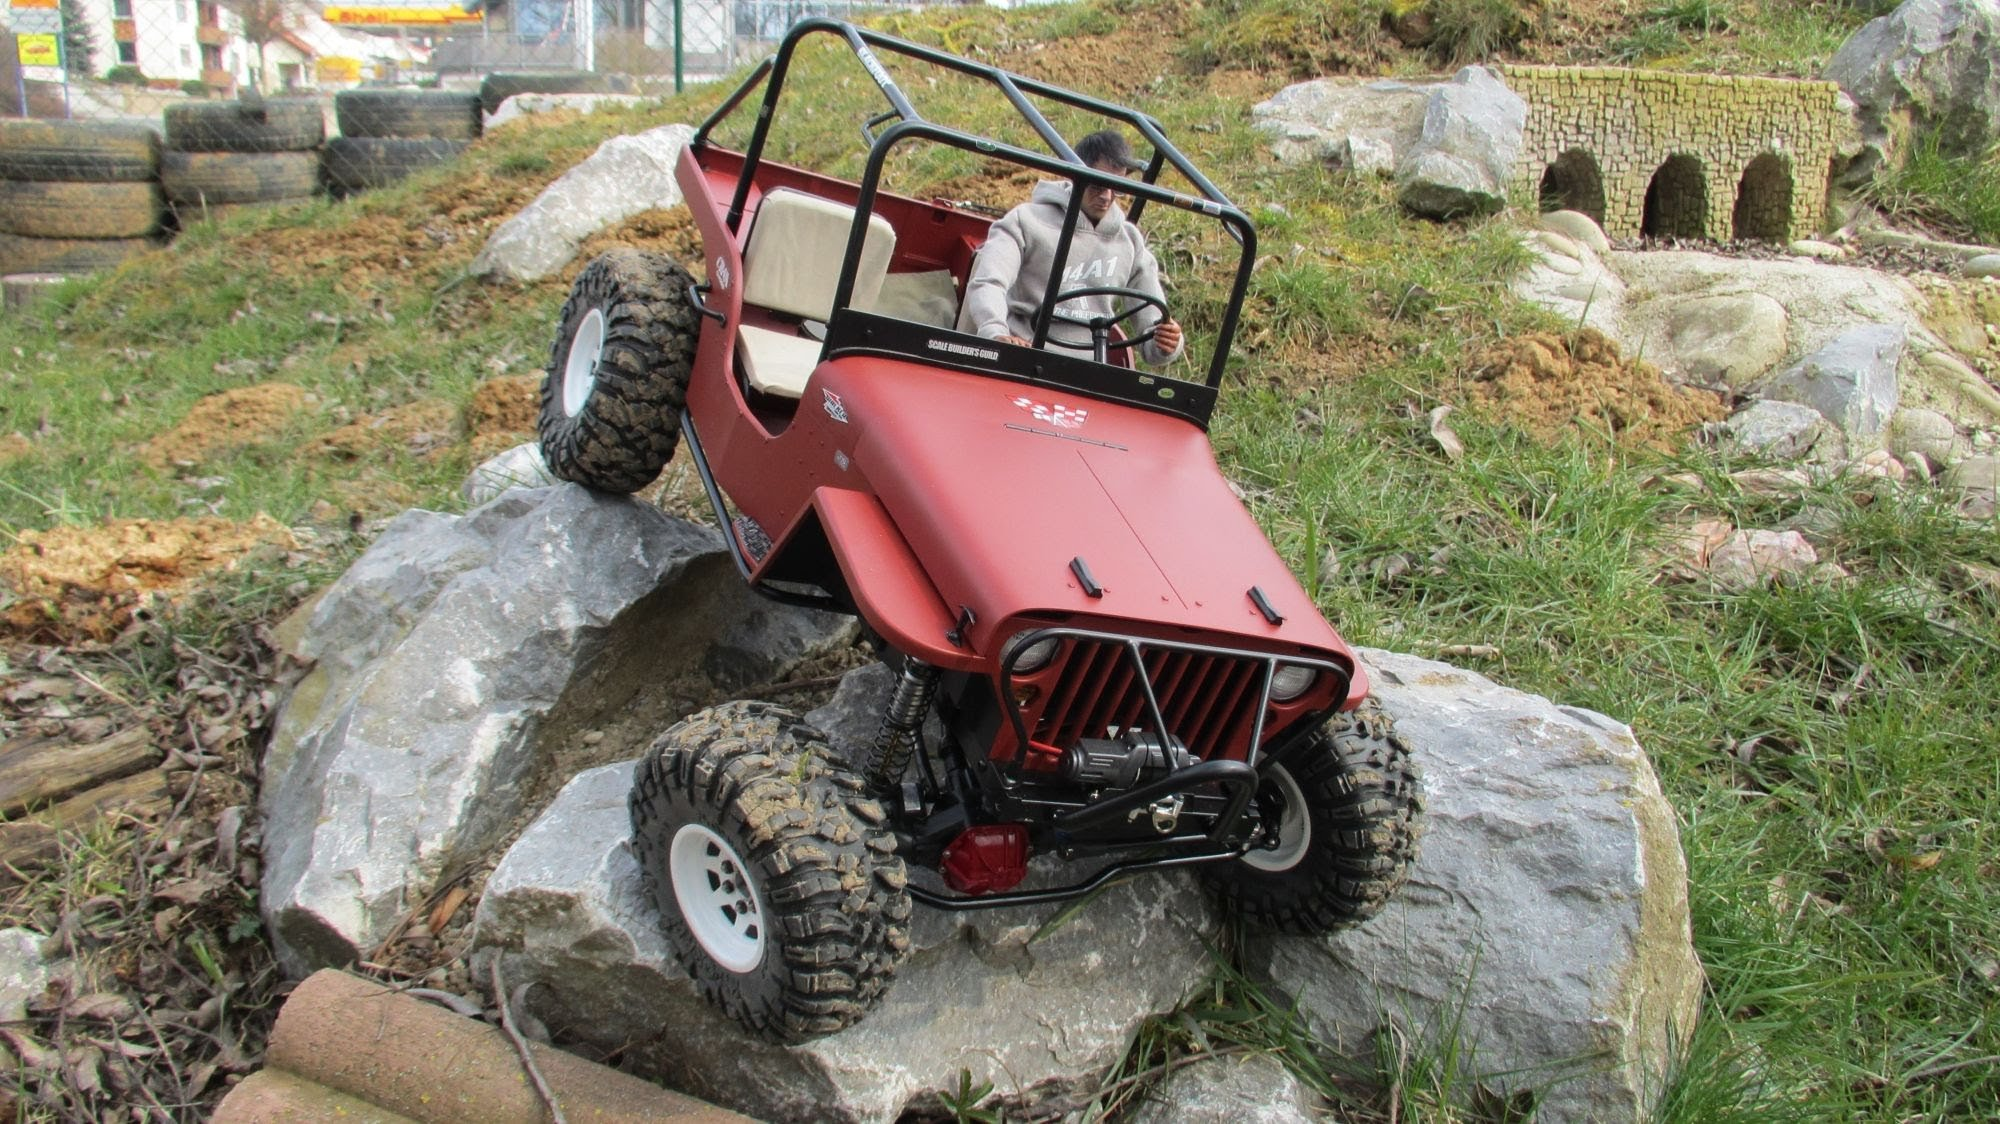 rc trucks with Jeep Suv 4x4 Truck Offroad on Ford Mustang Rt Dream Drive 7 further 290271138457981108 moreover Familie Kolenc home pages furthermore RC Mini Cooper 1 8 Scale Electric Car moreover Siku.